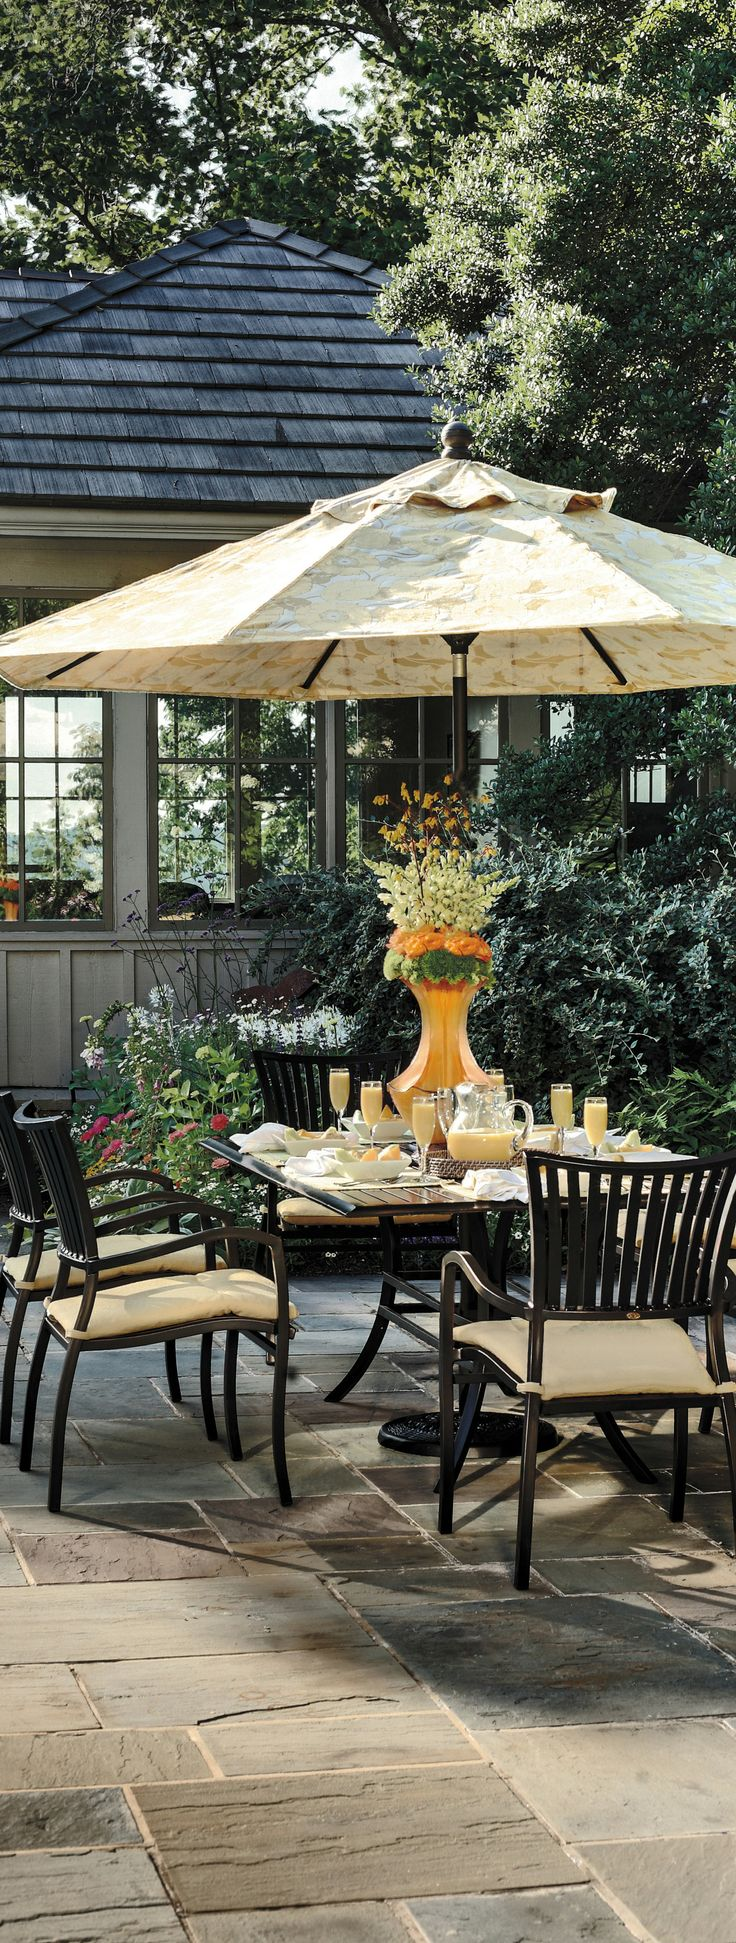 Enjoy Outdoor Dinners With The Stackable Strata Aluminum Luxury Outdoor  Furniture Set From Summer Classics!